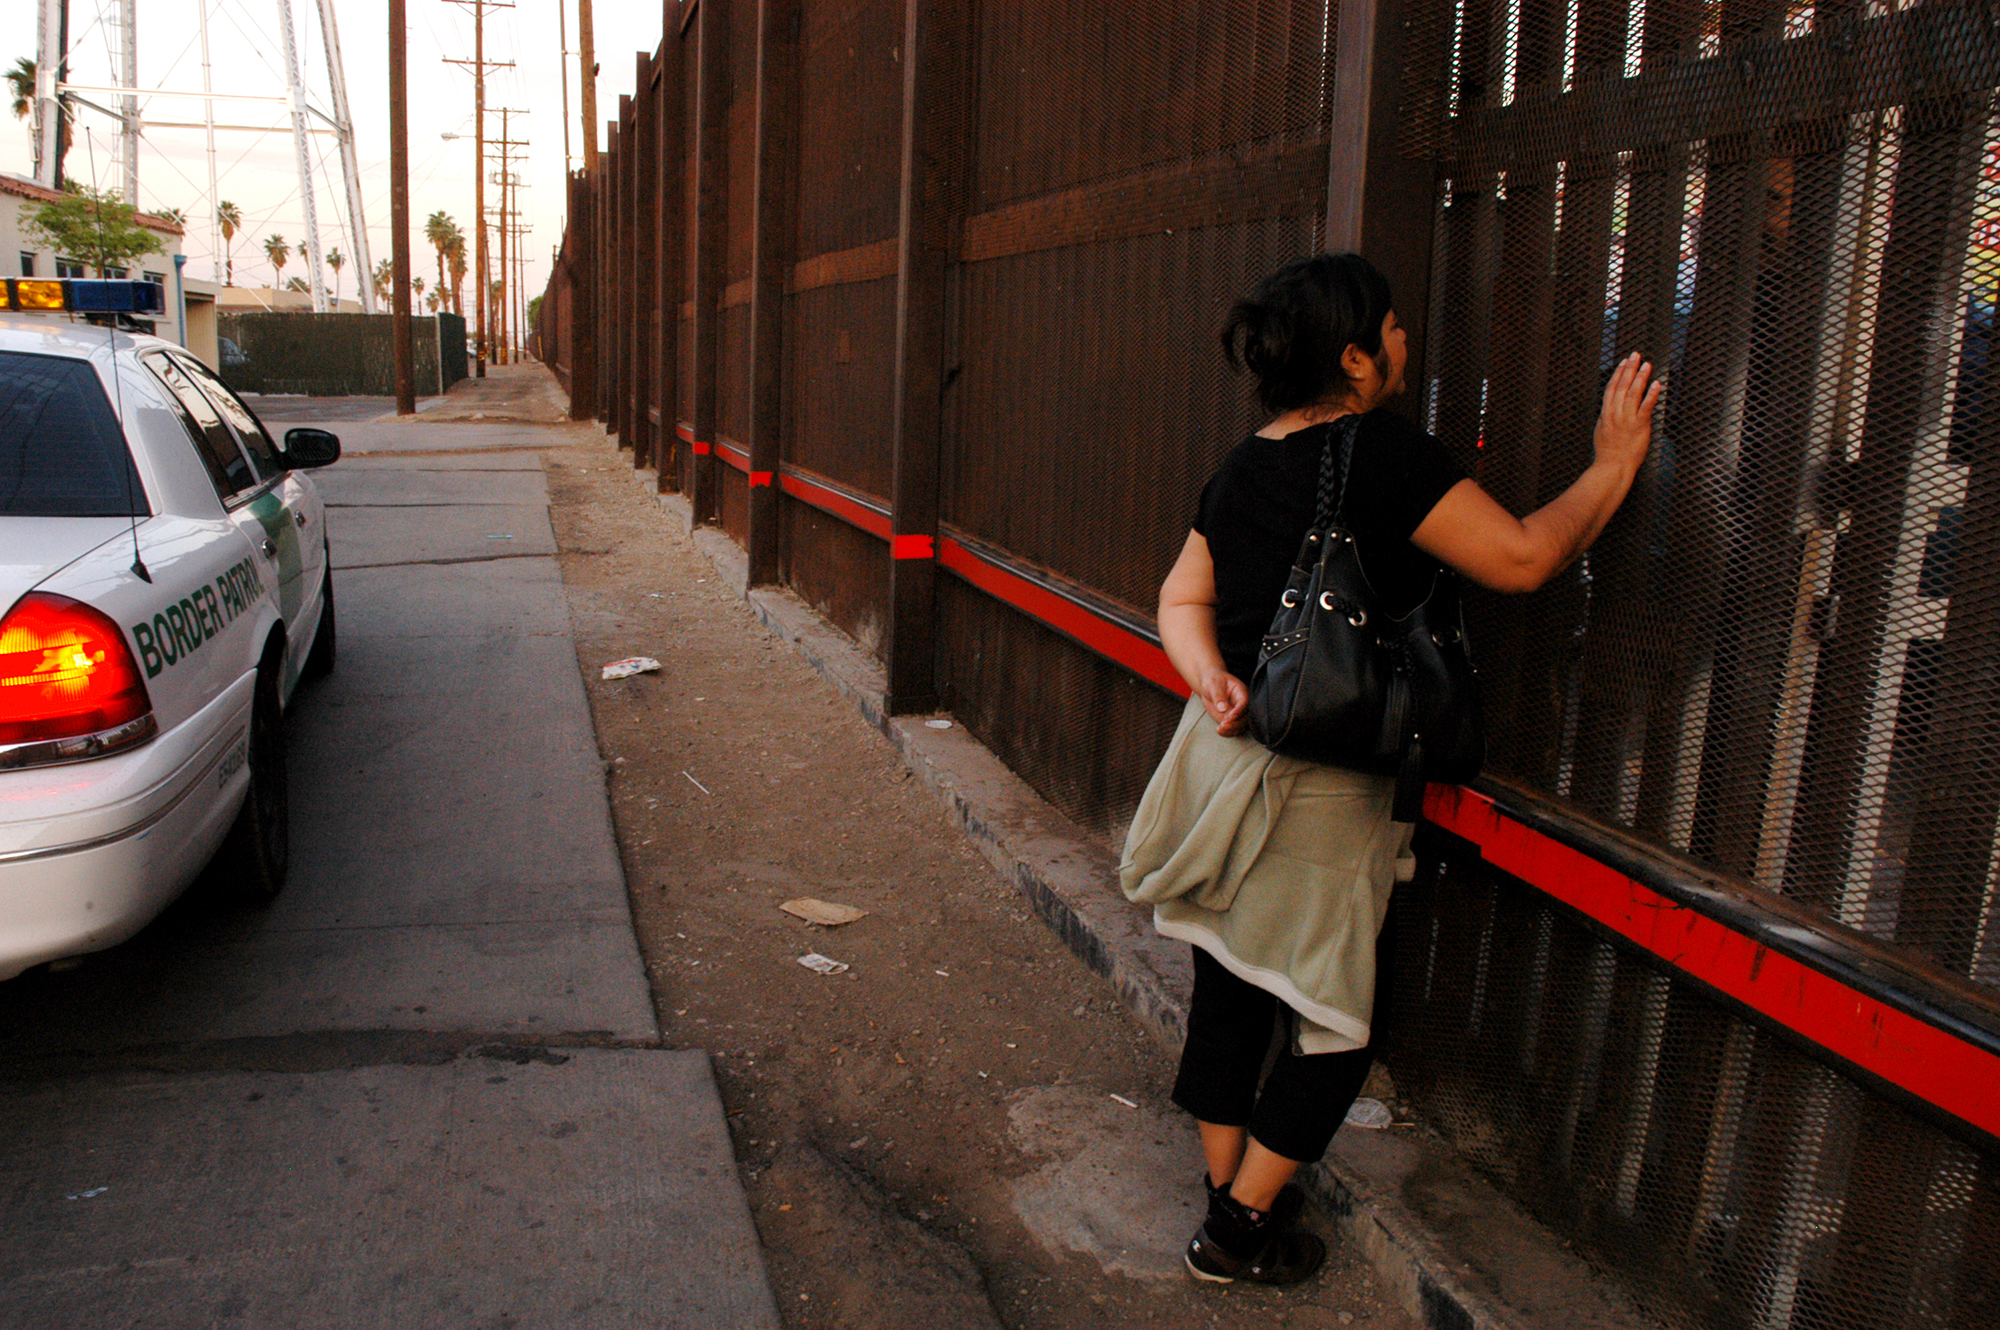 A woman (on the California side of the fence) meets her husband (on the Mexico side of the fence) to talk. She works in California, and does so legally, but while her permit and documents are being renewed she stays in the U.S. rather than return to Mexico every evening and risk not being able to be allowed back in the country to go to work the next day.